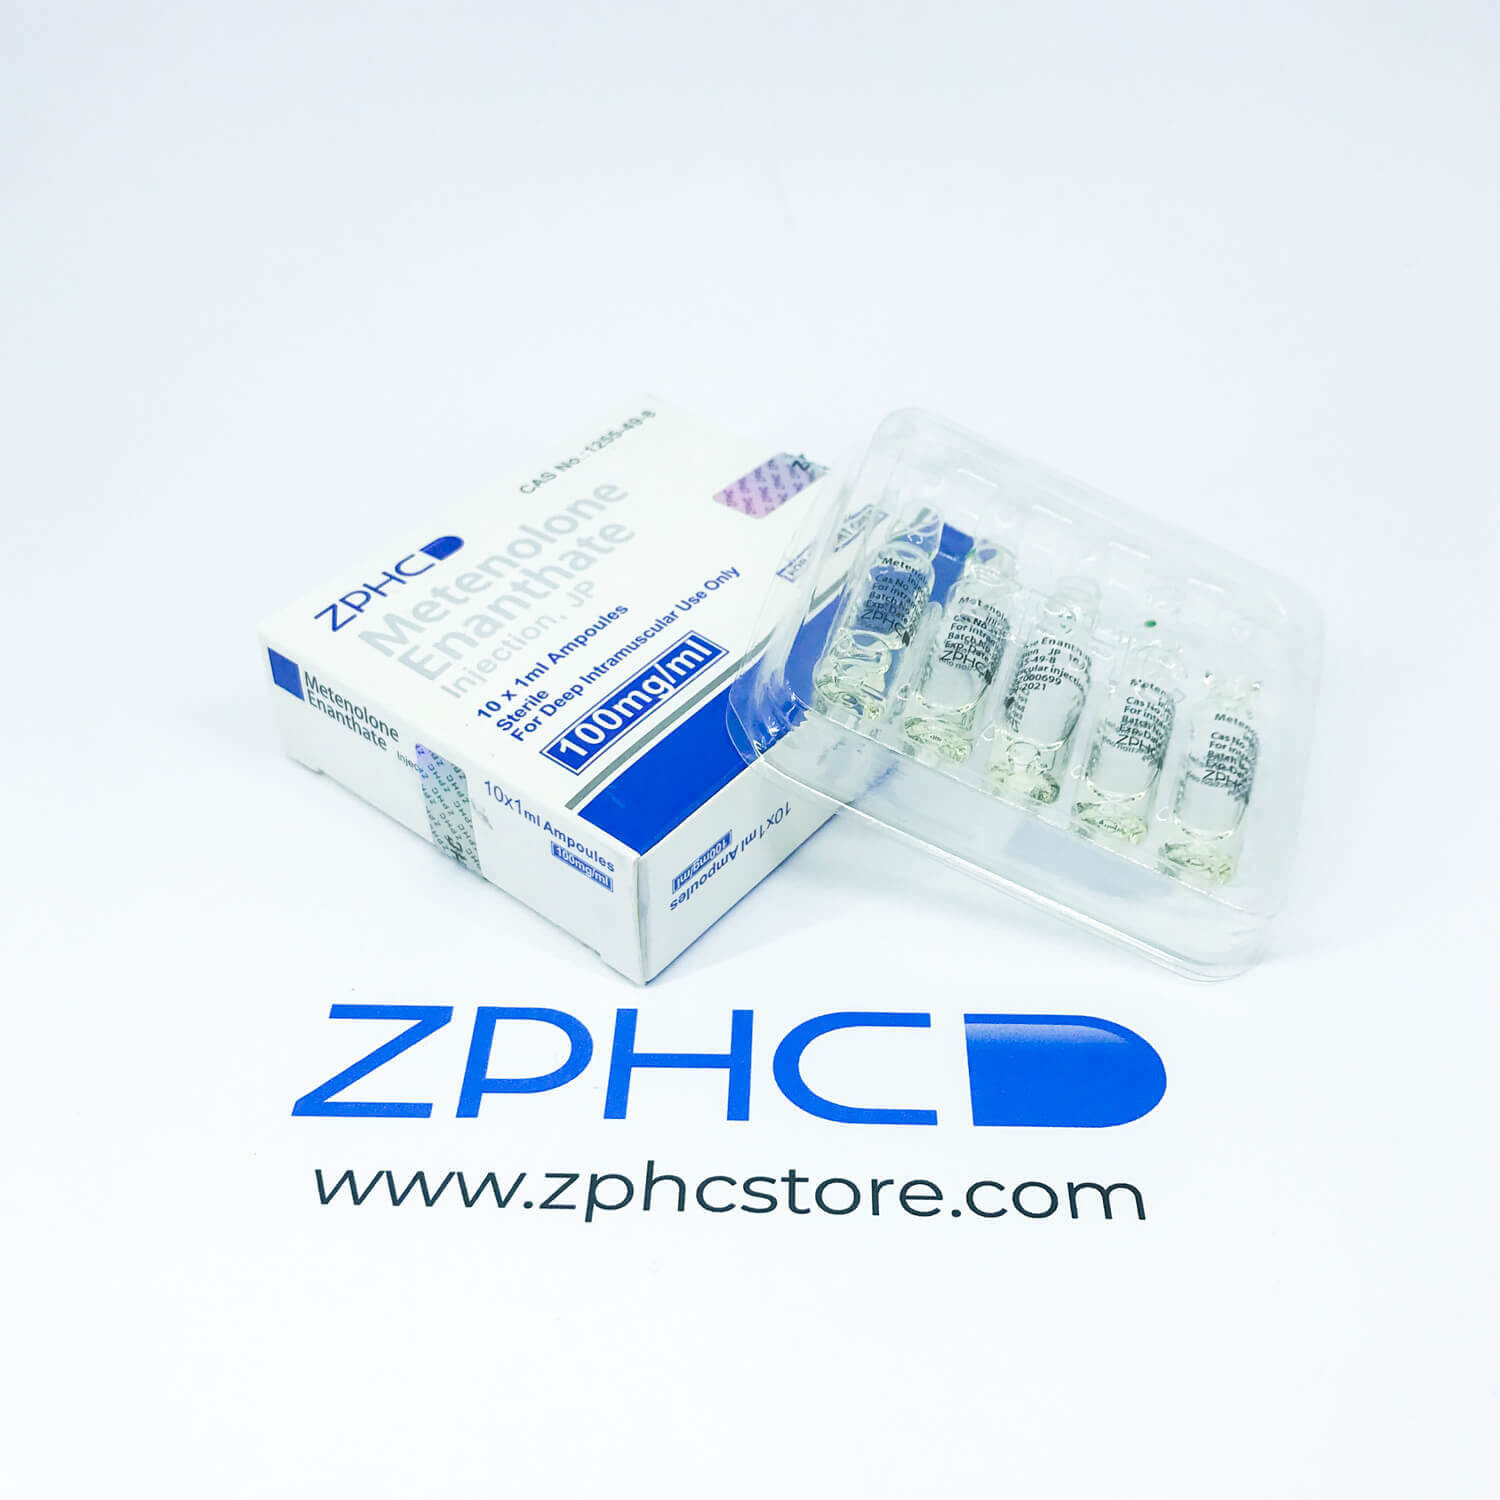 Methenolone Enanthate, Primabolan, Prima ZPHC zphcstore.com